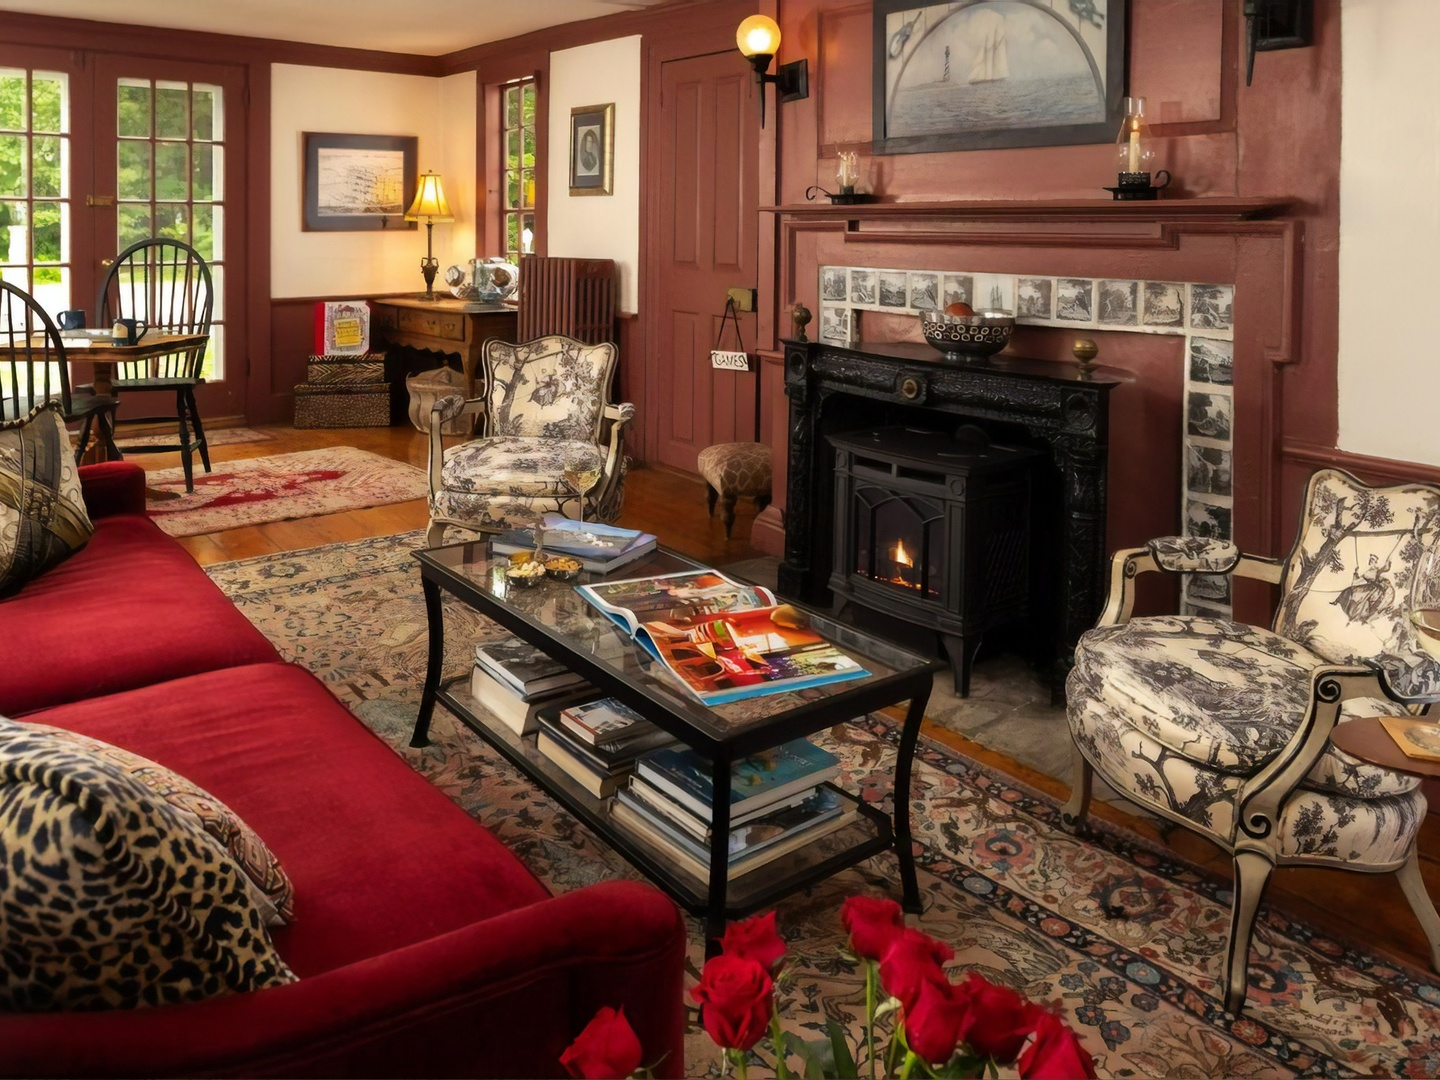 A living room filled with furniture and a fire place at Waldo Emerson Inn.